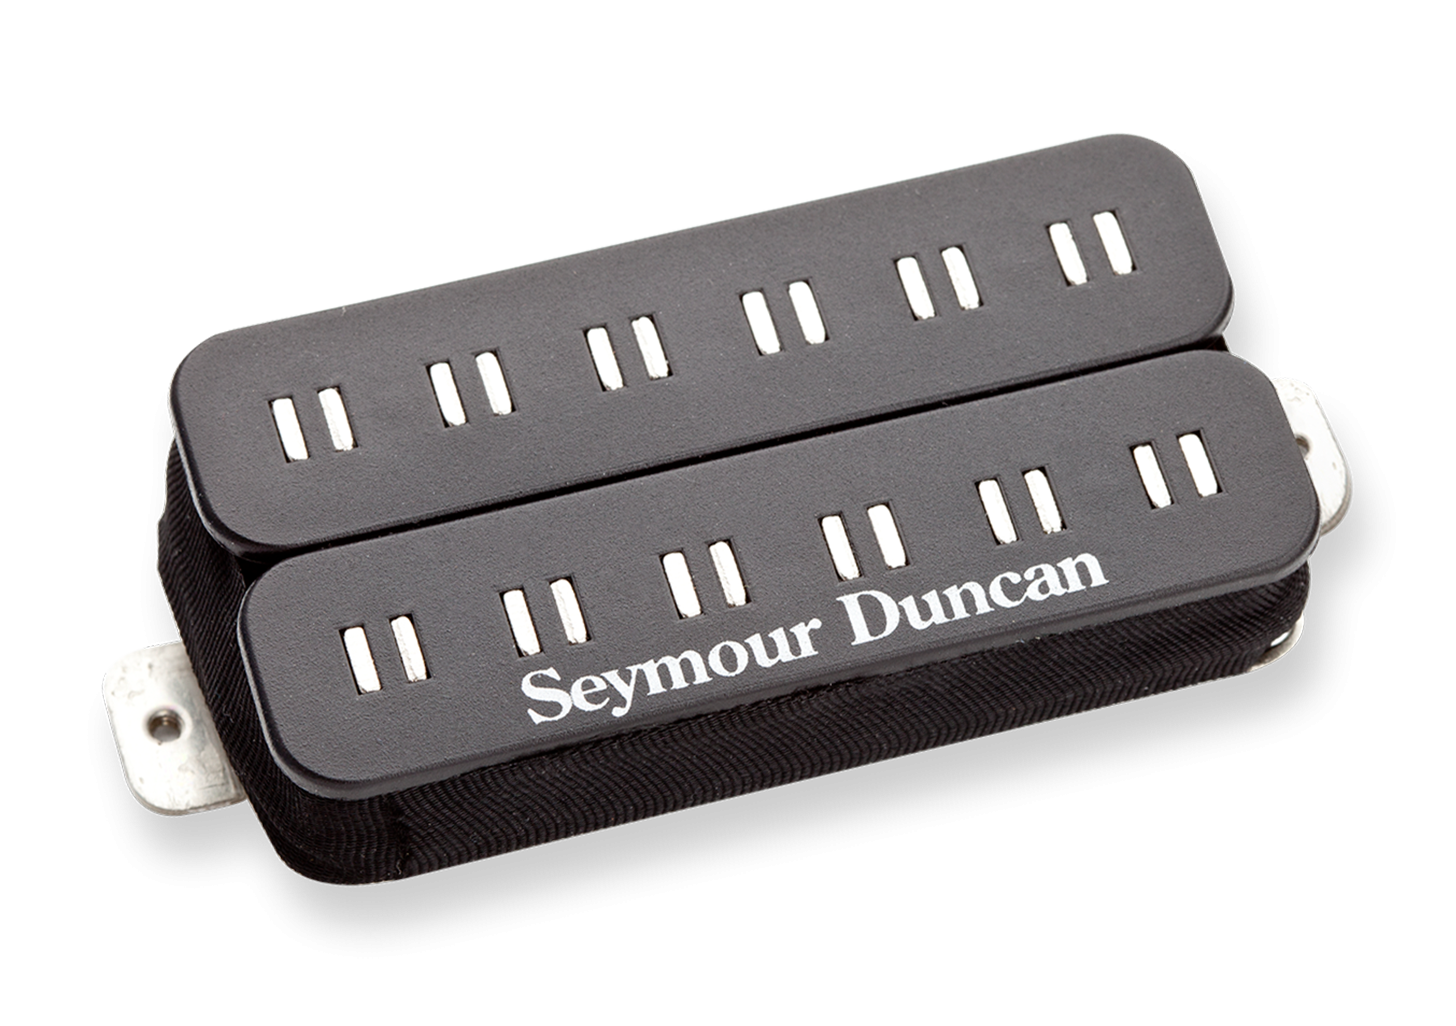 Seymour Duncan Parallel Axis Distortion Humbucker - PA-TB2B Bridge